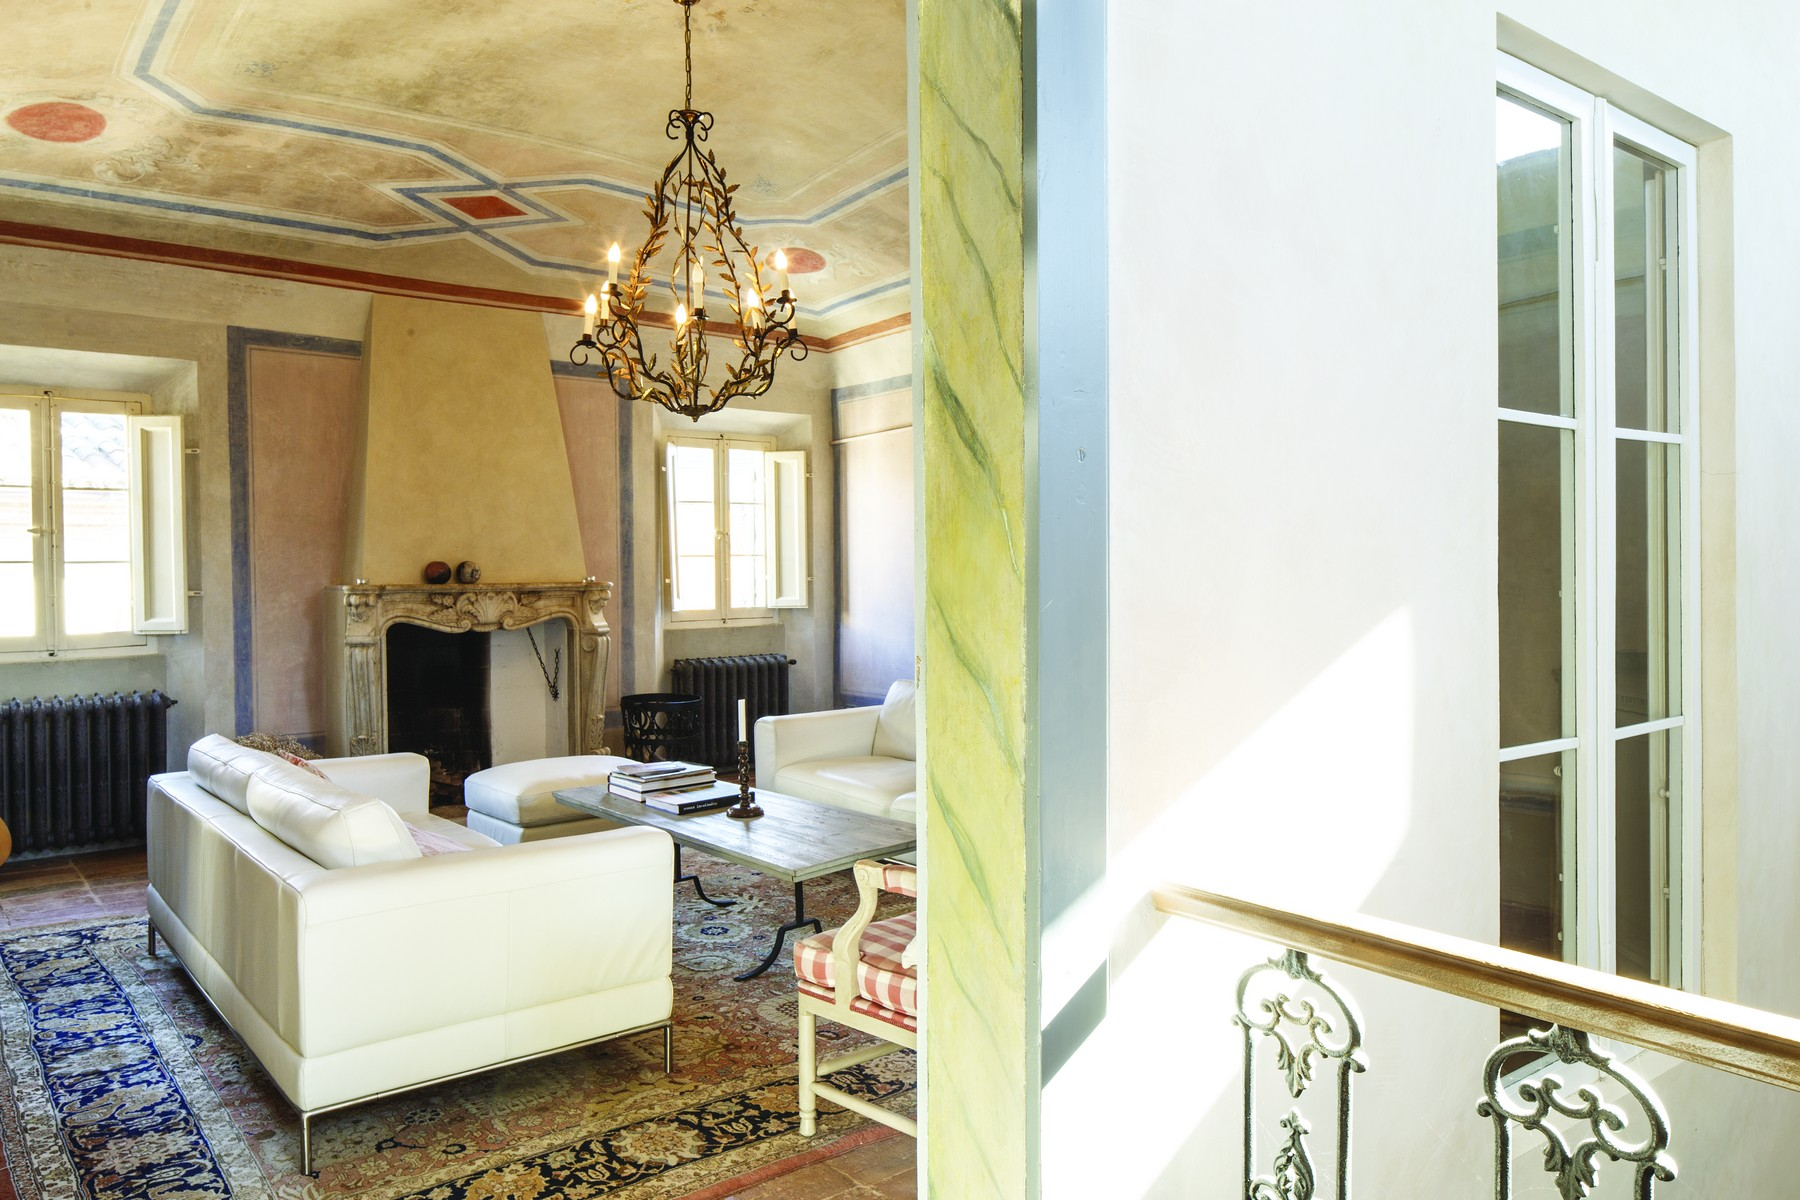 Additional photo for property listing at Scattolari Palace, Mondaino Via Roma Mondaino, Rimini 47836 Italia